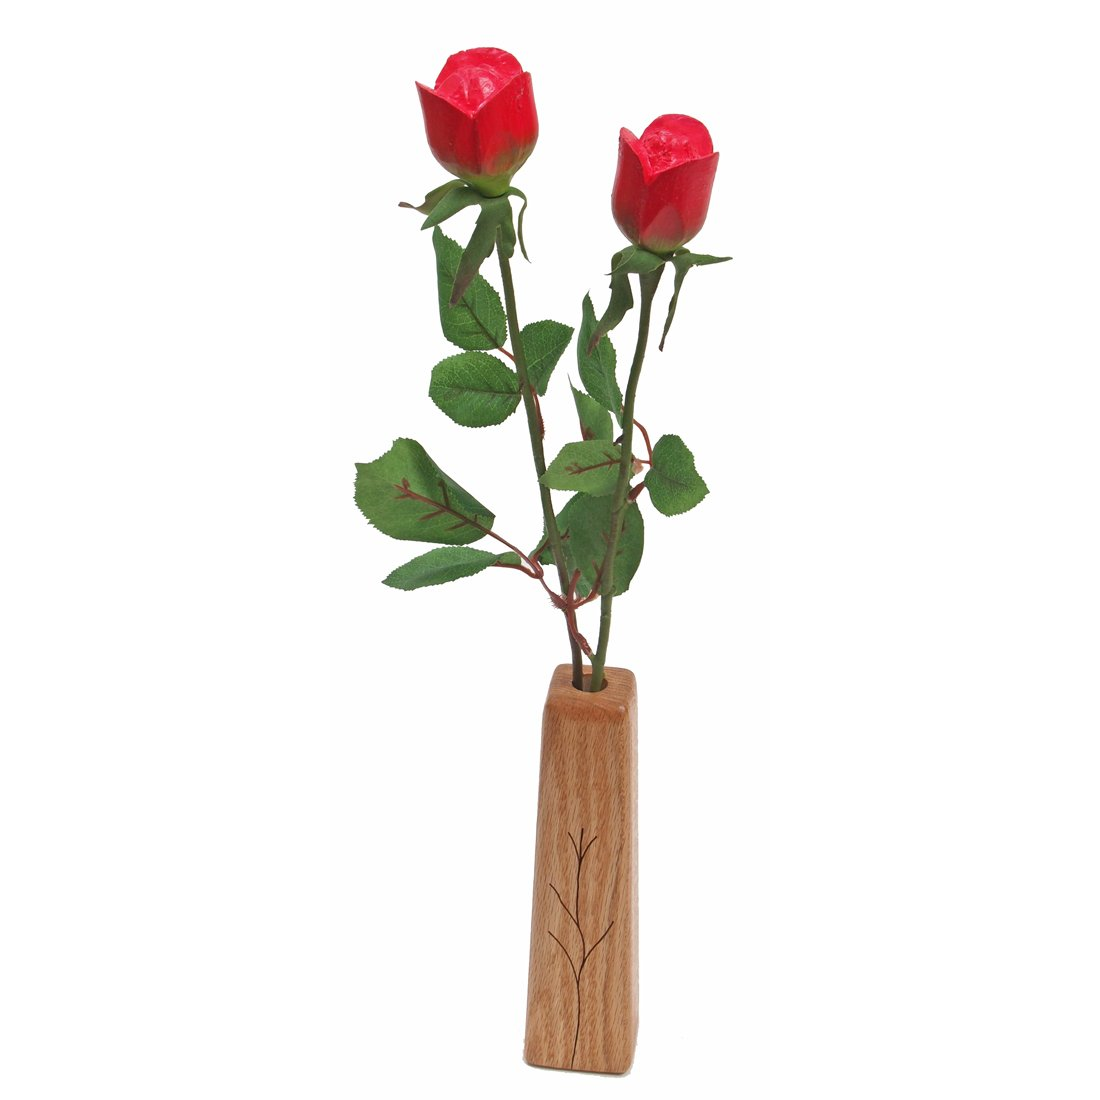 JustPaperRoses 5th Wedding Anniversary gift 2-stem wood roses with vase